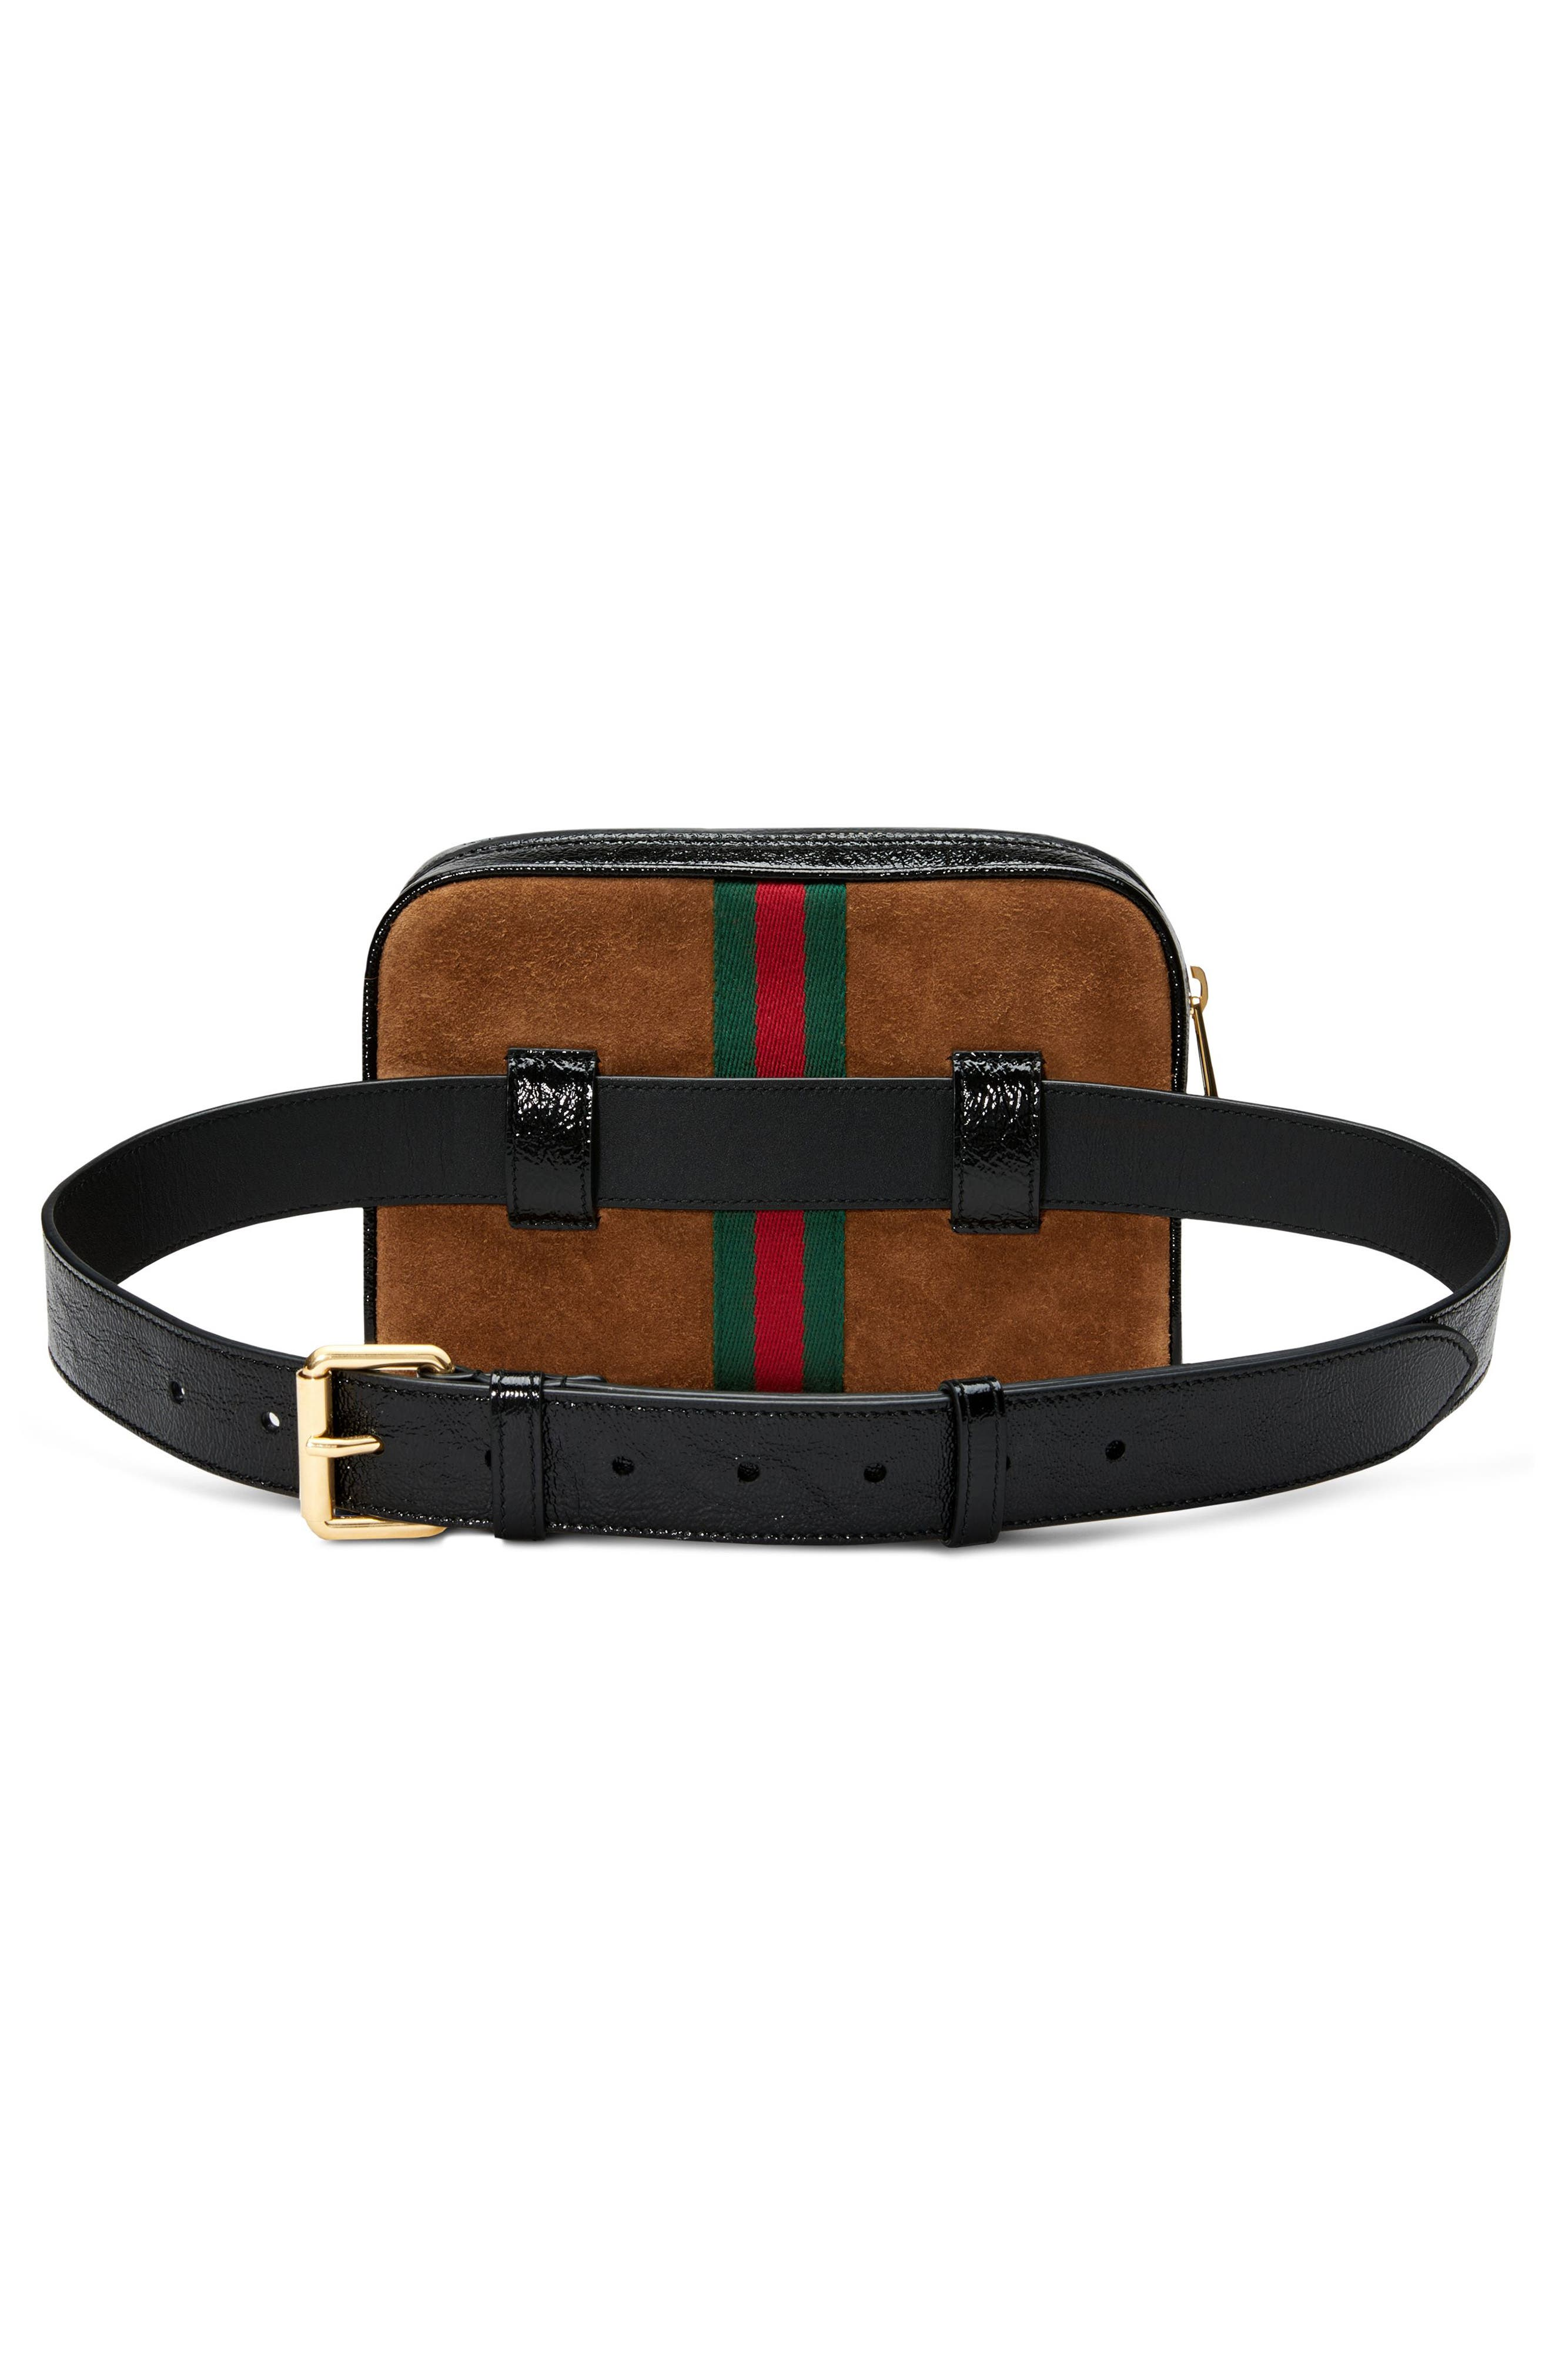 Ophidia Small Suede Belt Bag,                             Alternate thumbnail 4, color,                             NOCCIOLA/ NERO/ VERT RED